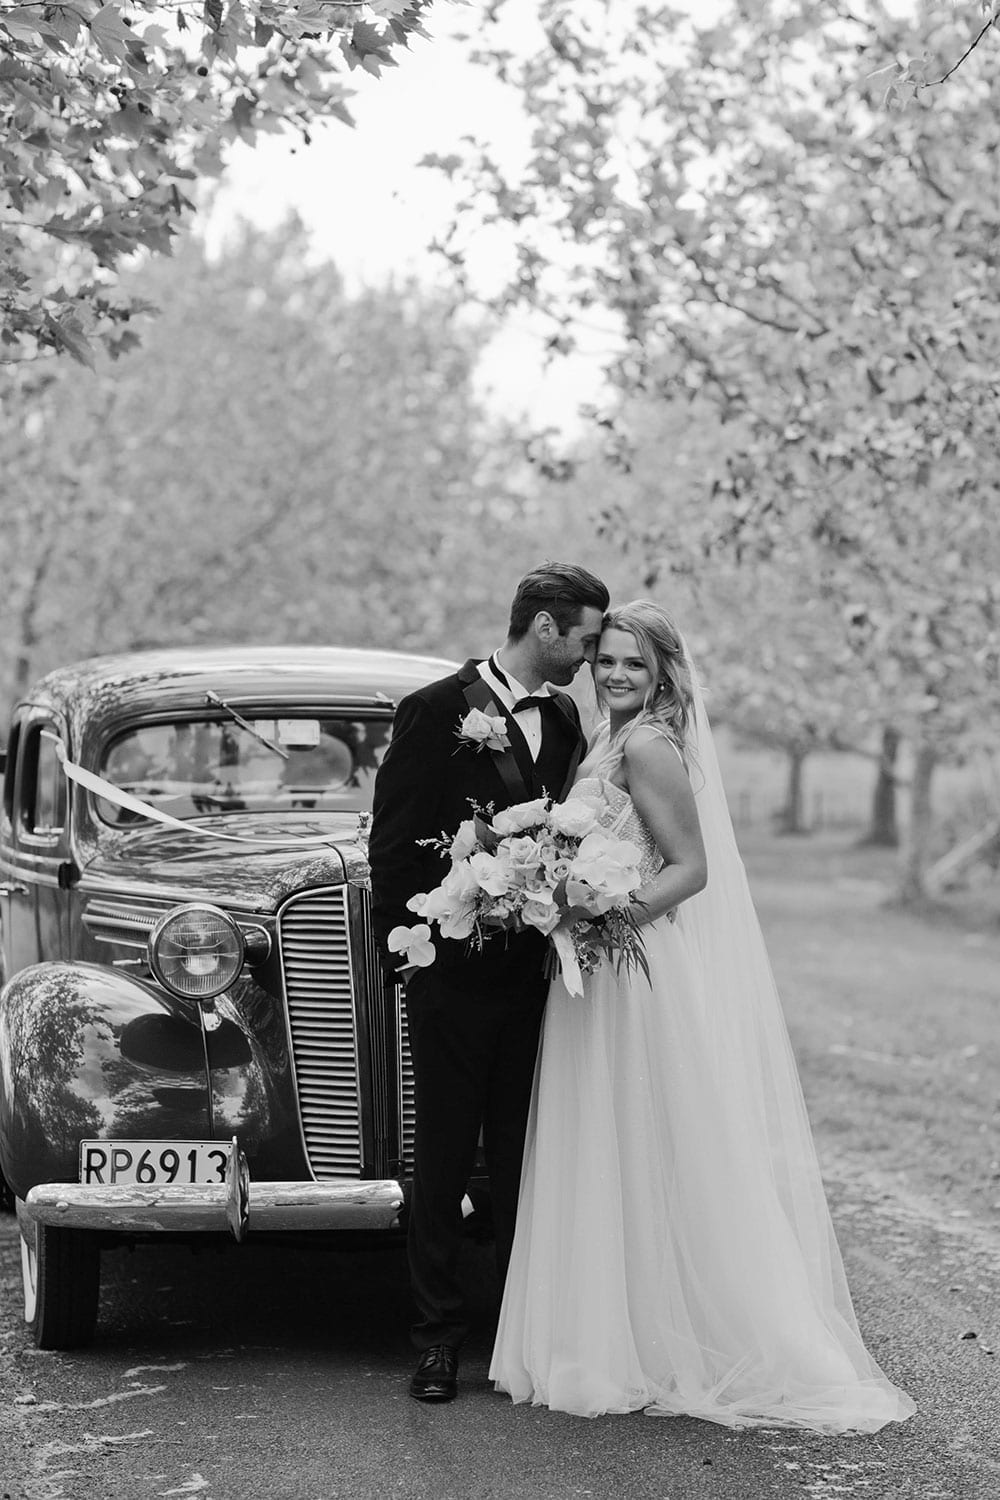 Vinka Design Features Real Weddings - bride wearing custom made gown with two different beadings incorporated into a fitted, structured bodice, and dreamy layered tulle skirt. Bride and groom head to head next to wedding car in black and white